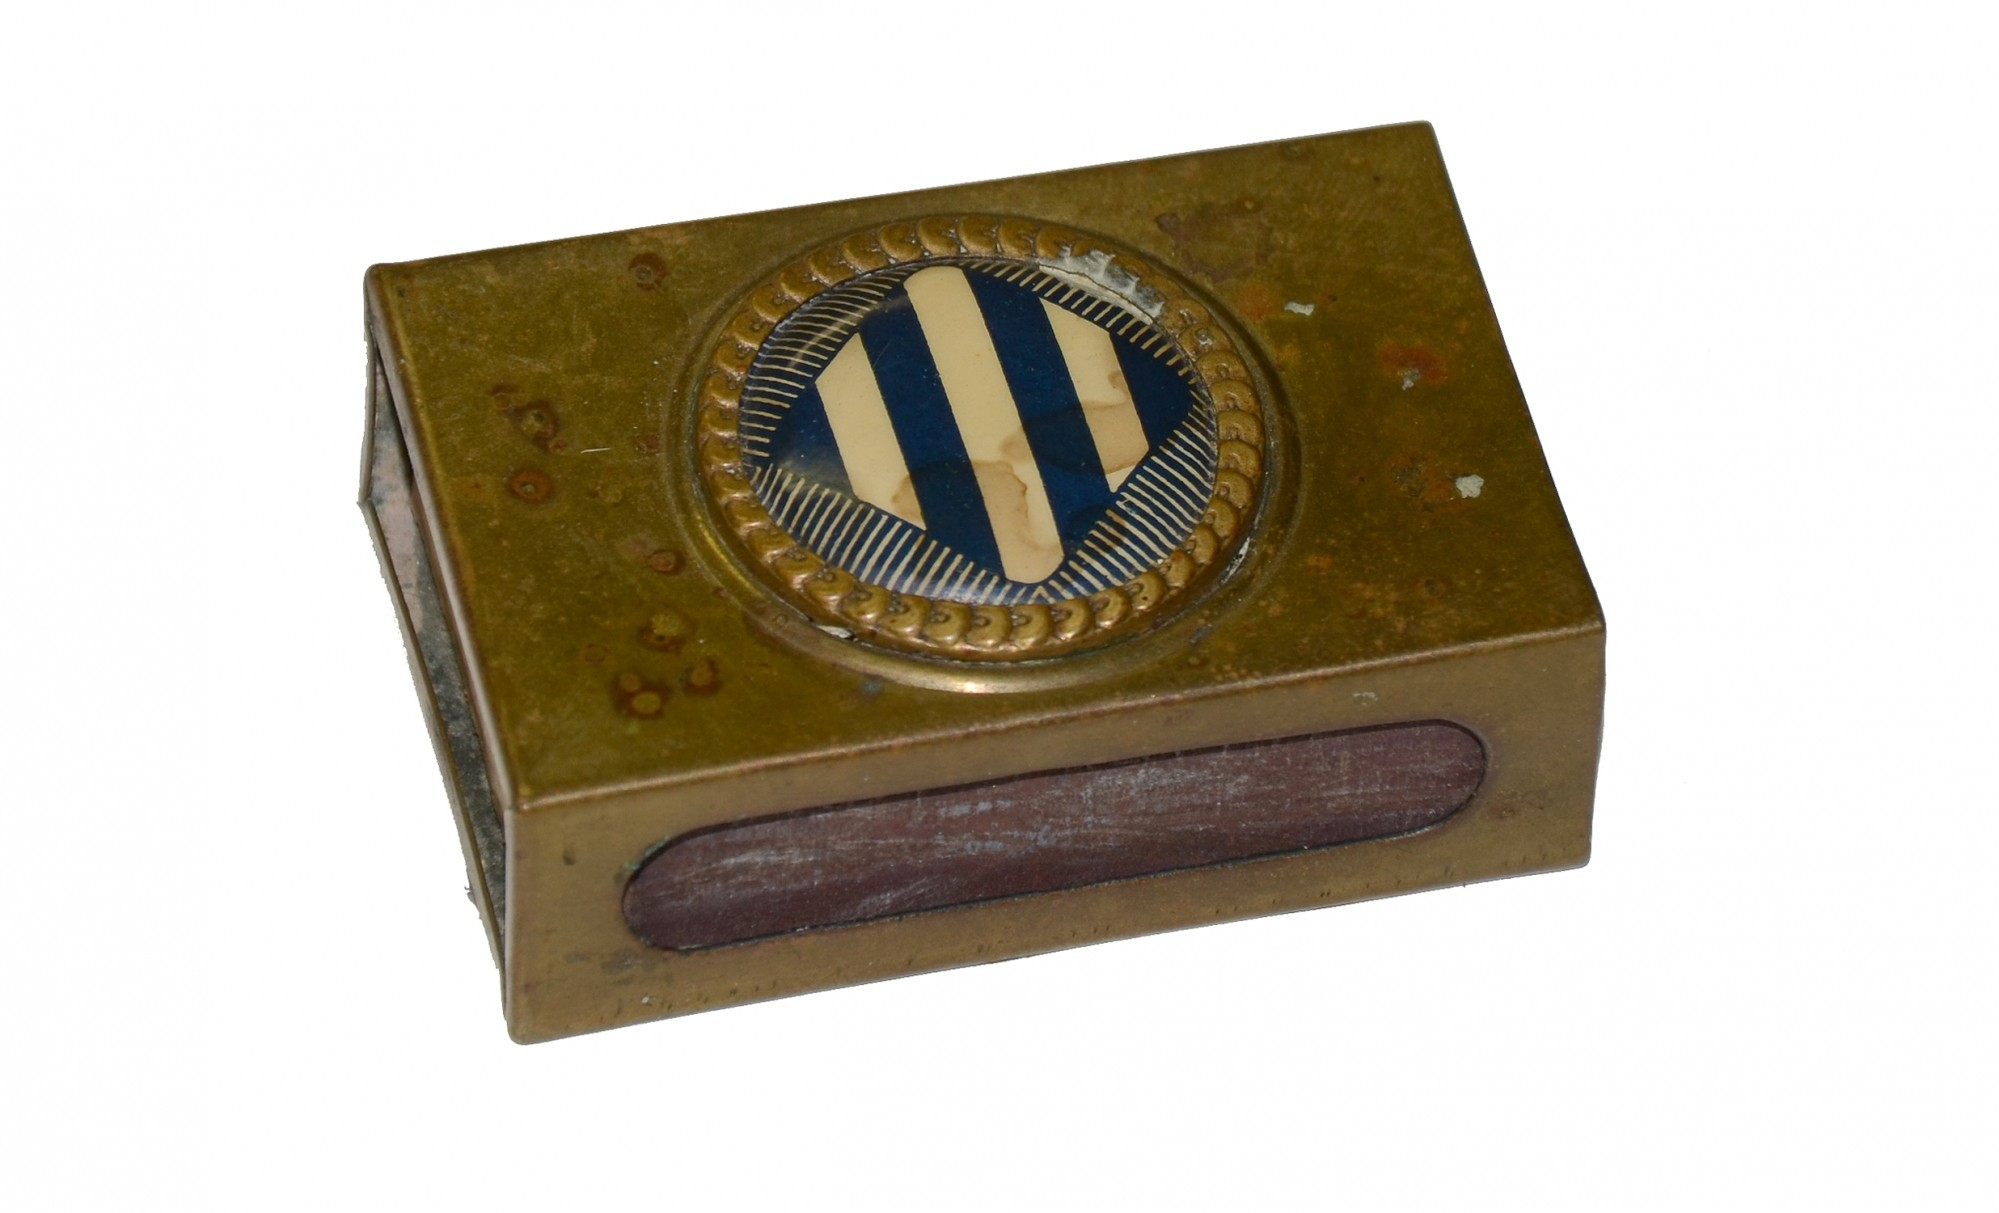 WORLD WAR ONE MATCH SAFE WITH 3RD INFANTRY DIVISION INSIGNIA